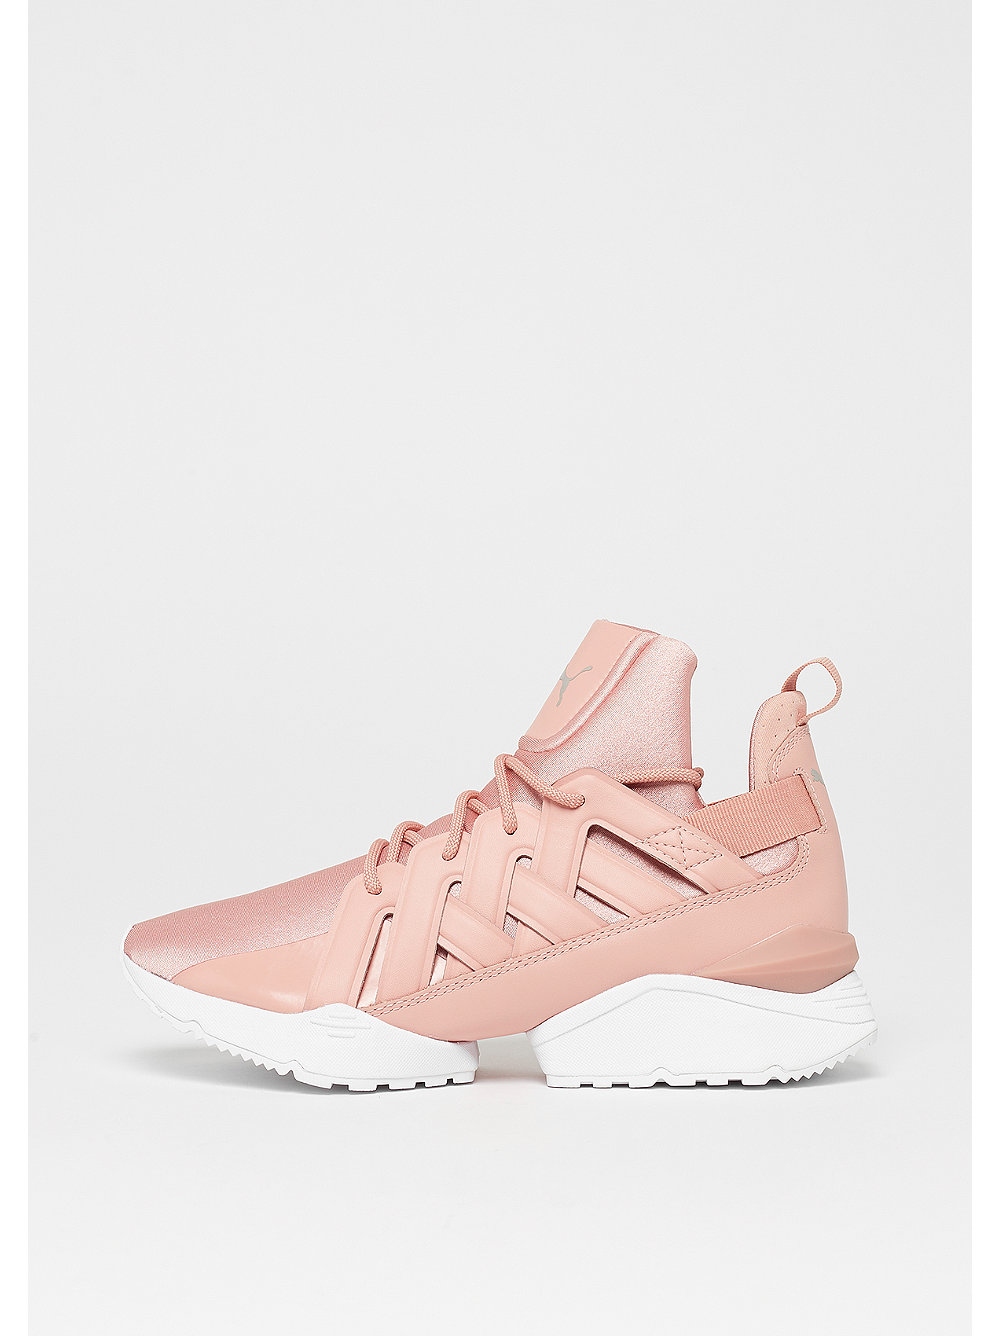 Puma Muse Echo Satin EP peach beige-puma white